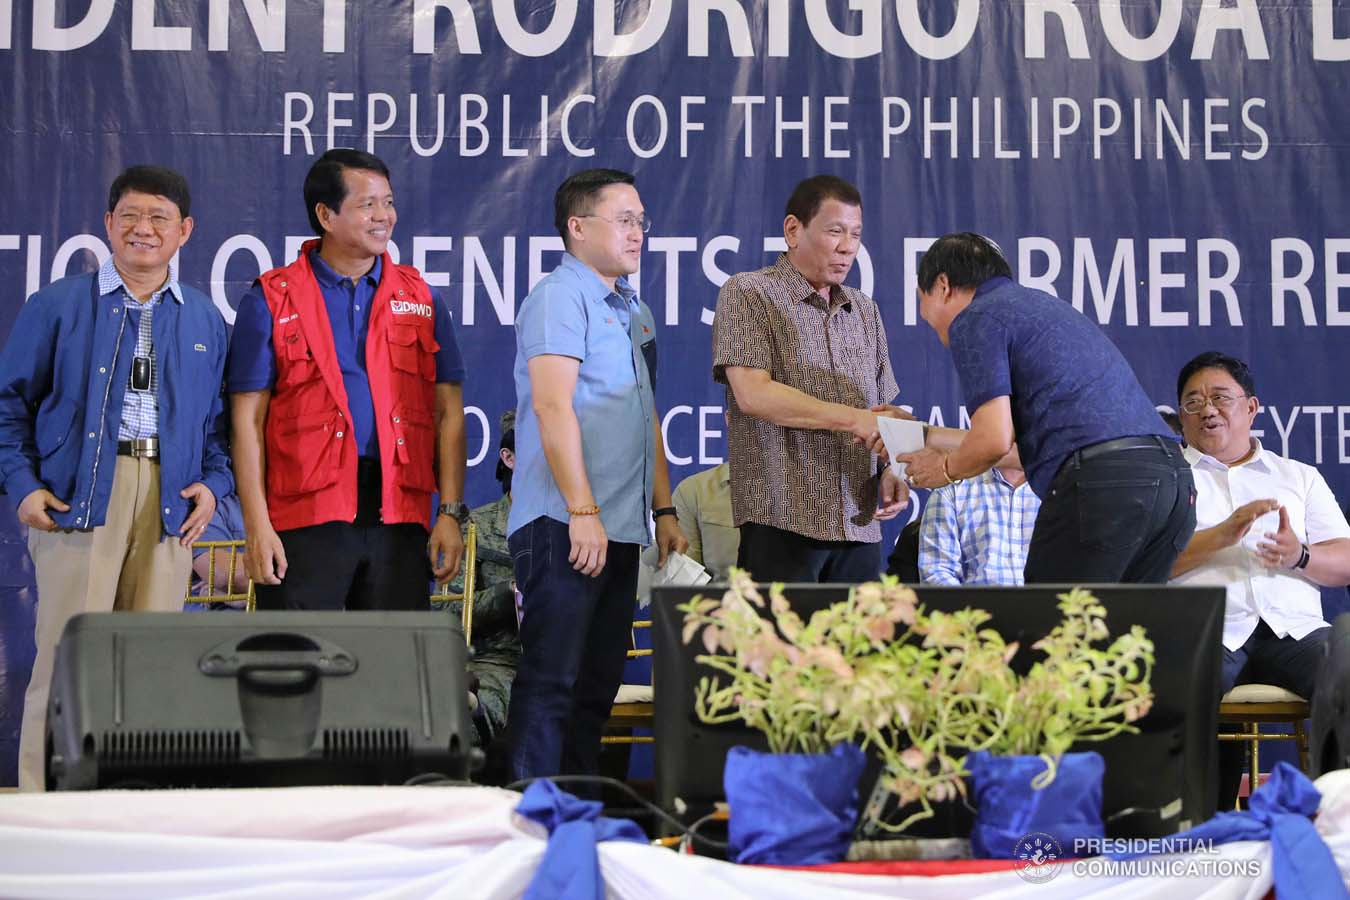 President Rodrigo Roa Duterte leads the distribution of benefits to former rebels at the San Isidro Central School in Leyte on January 23, 2020. VALERIE ESCALERA/PRESIDENTIAL PHOTO